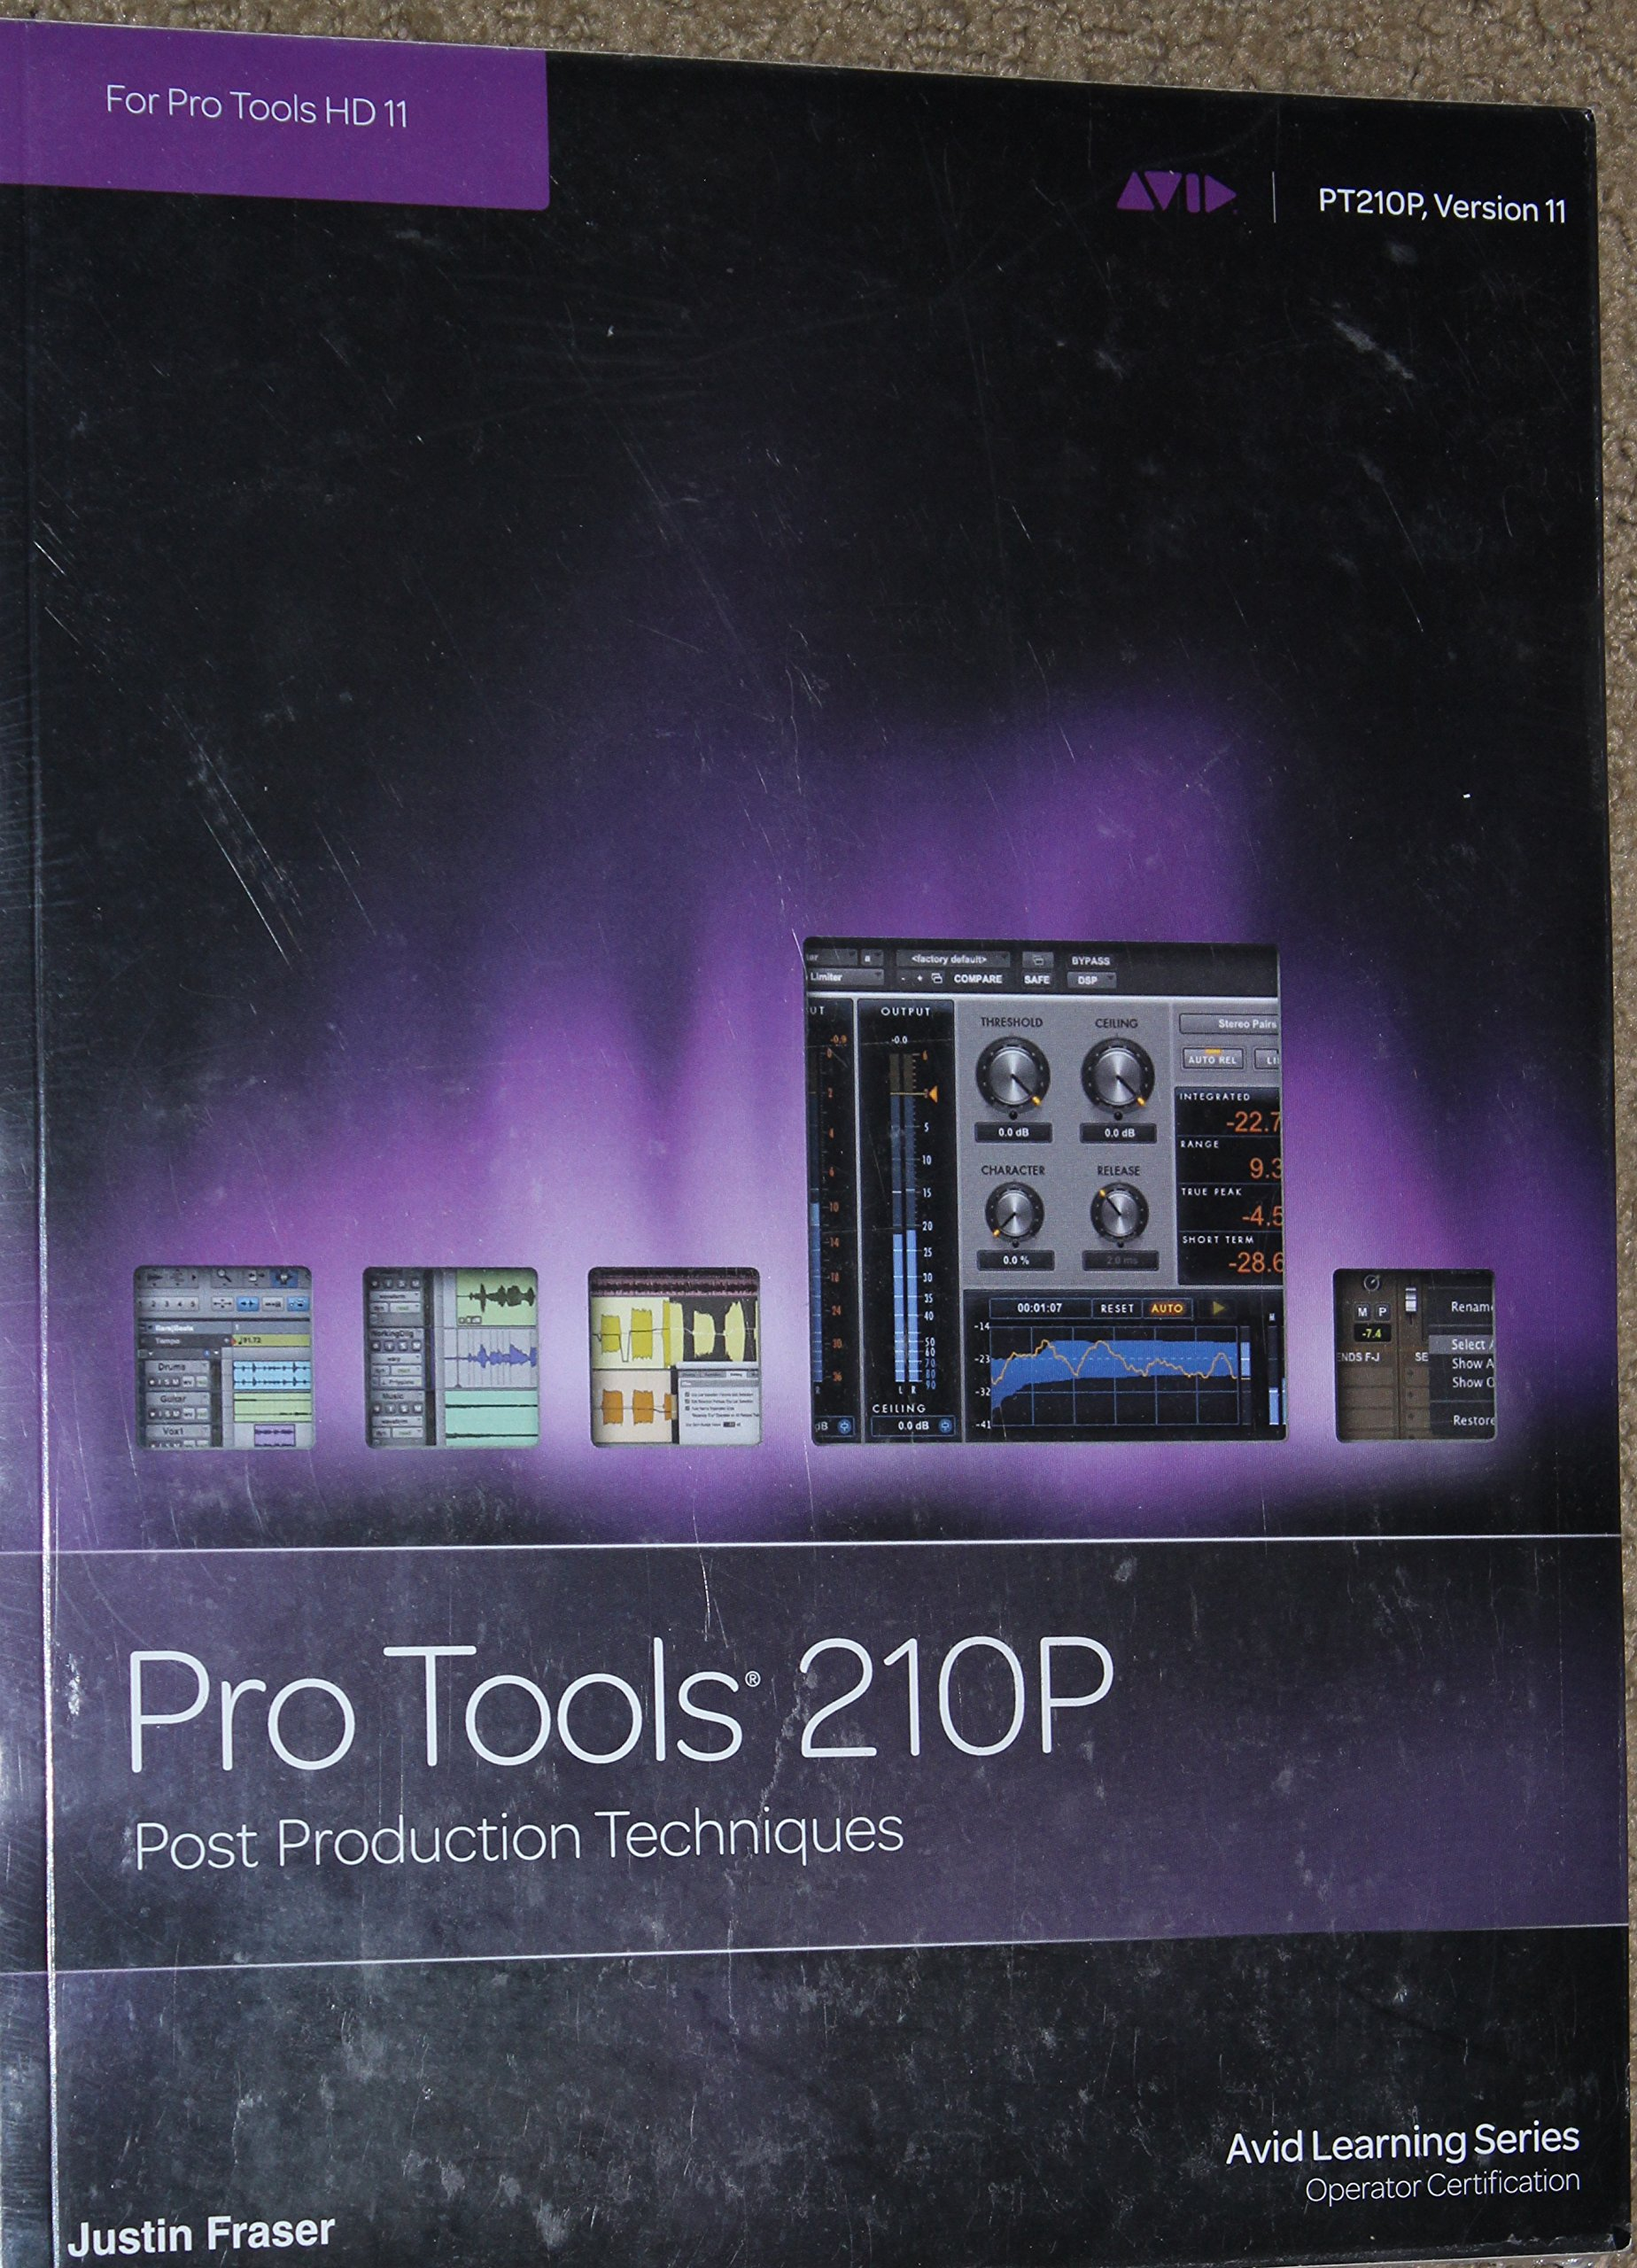 Pro Tools 210p Post Production Techniques Justrin Fraser